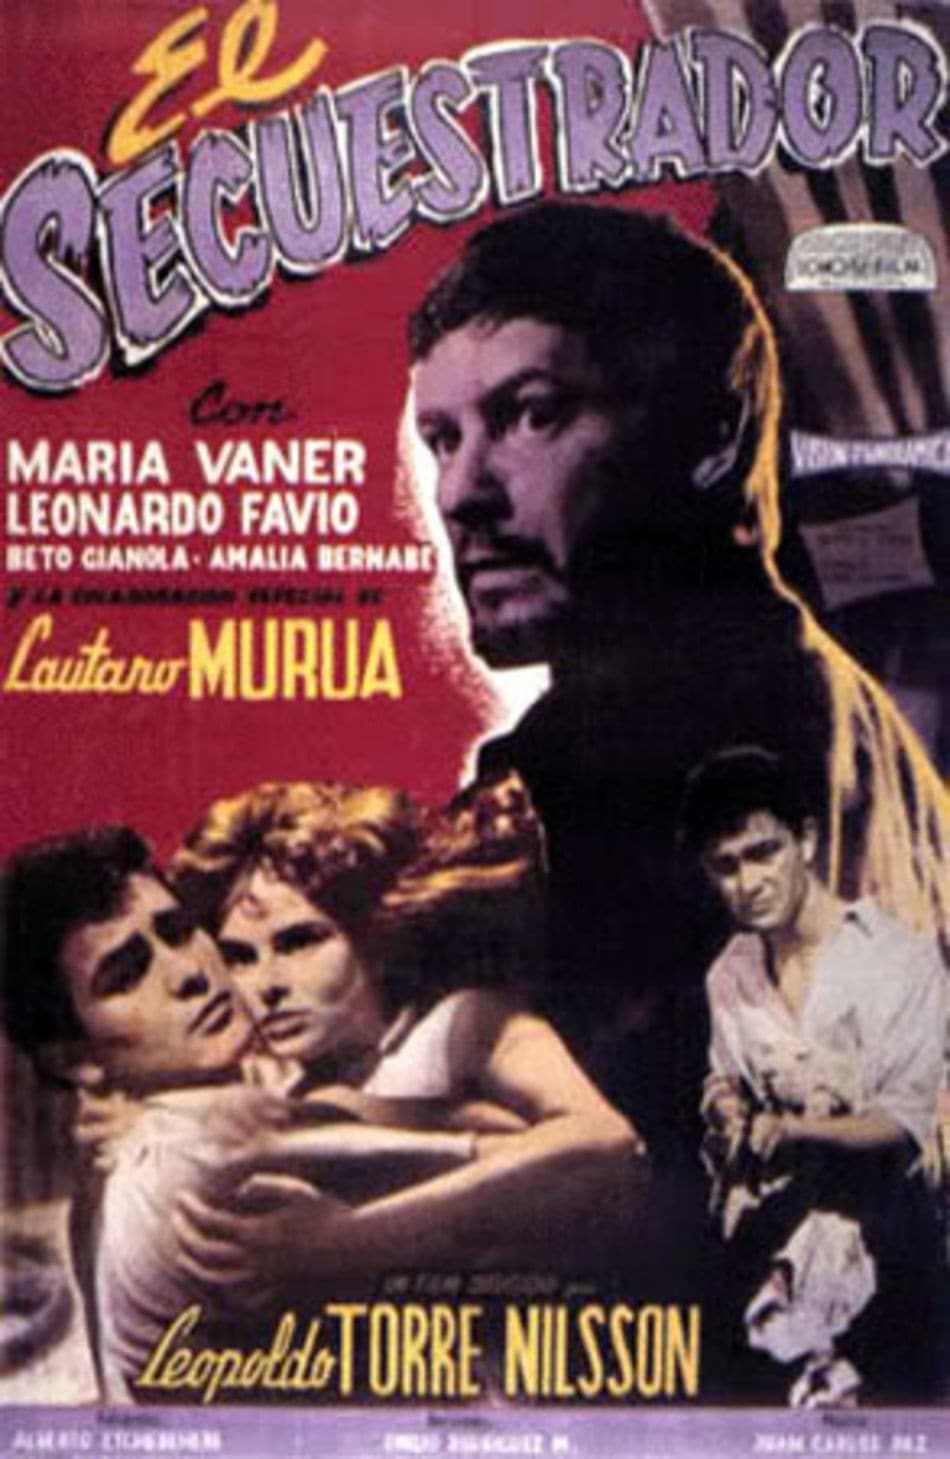 The Kidnapper (1958)